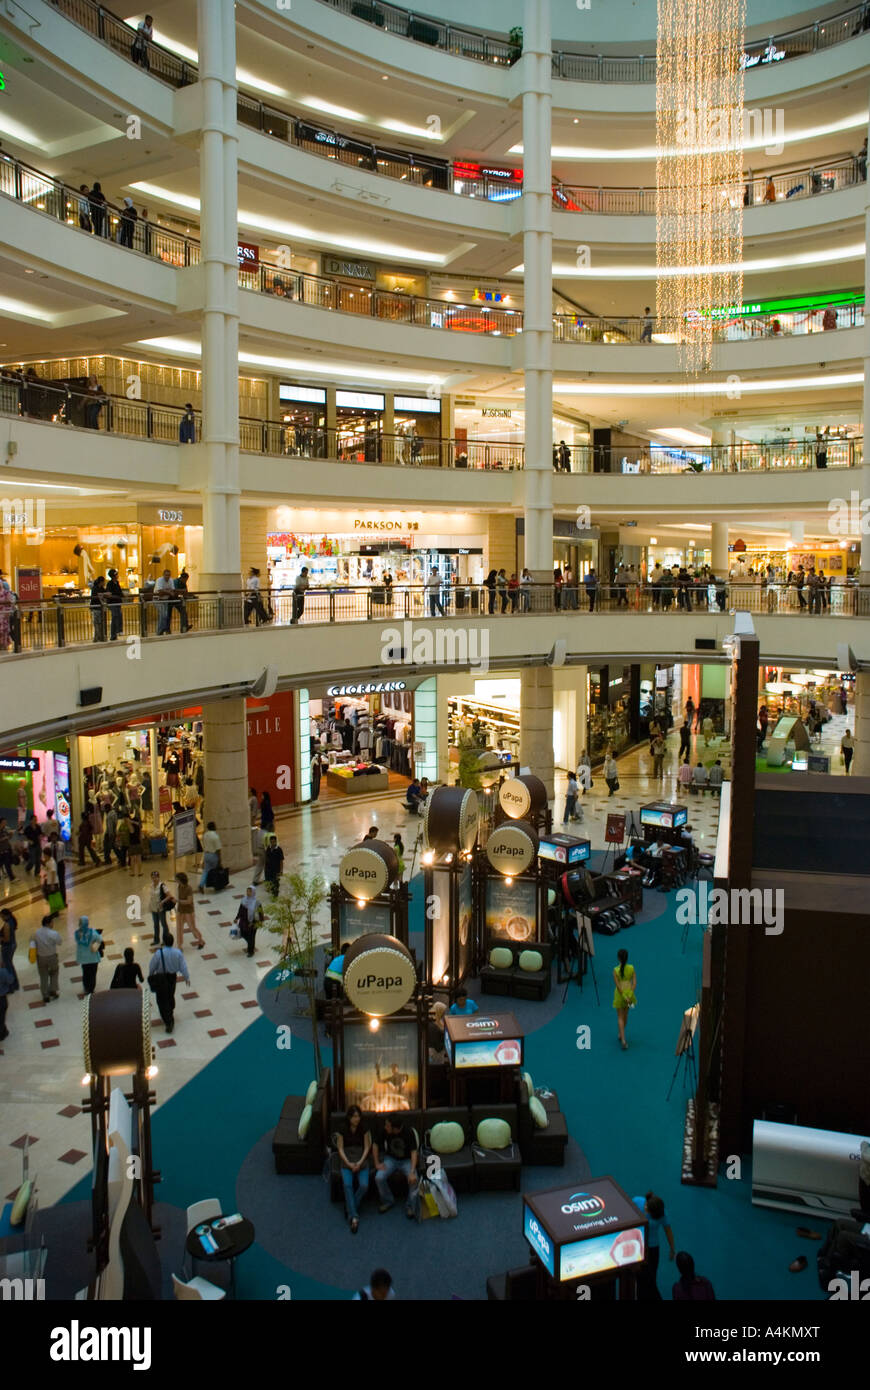 Modern shopping mall inside the Petronas twin towers complex